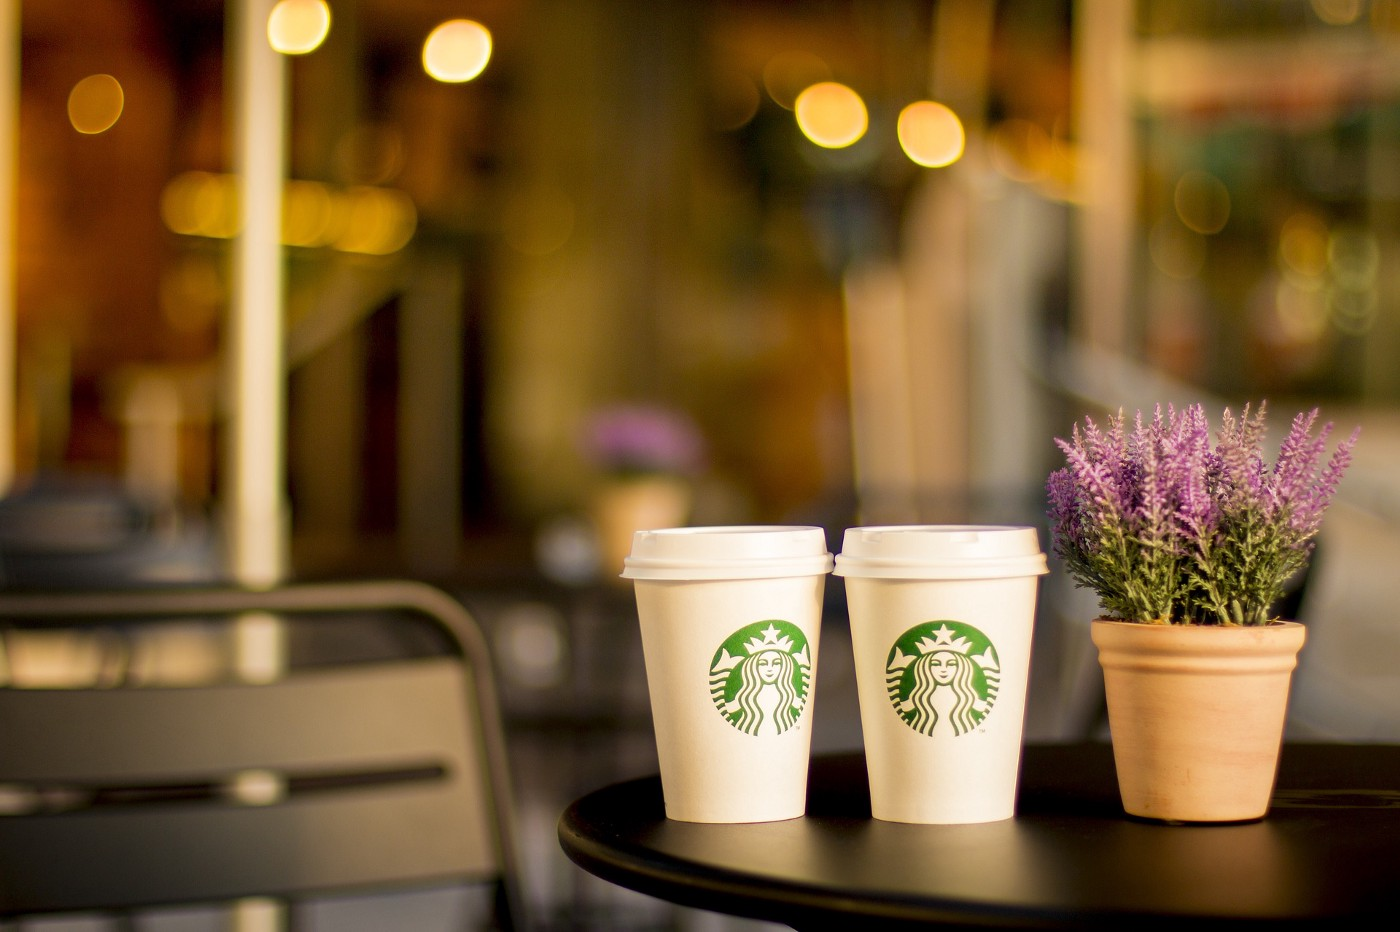 Two Starbucks coffee cups on a black table with a purple flowered plant sitting next to them